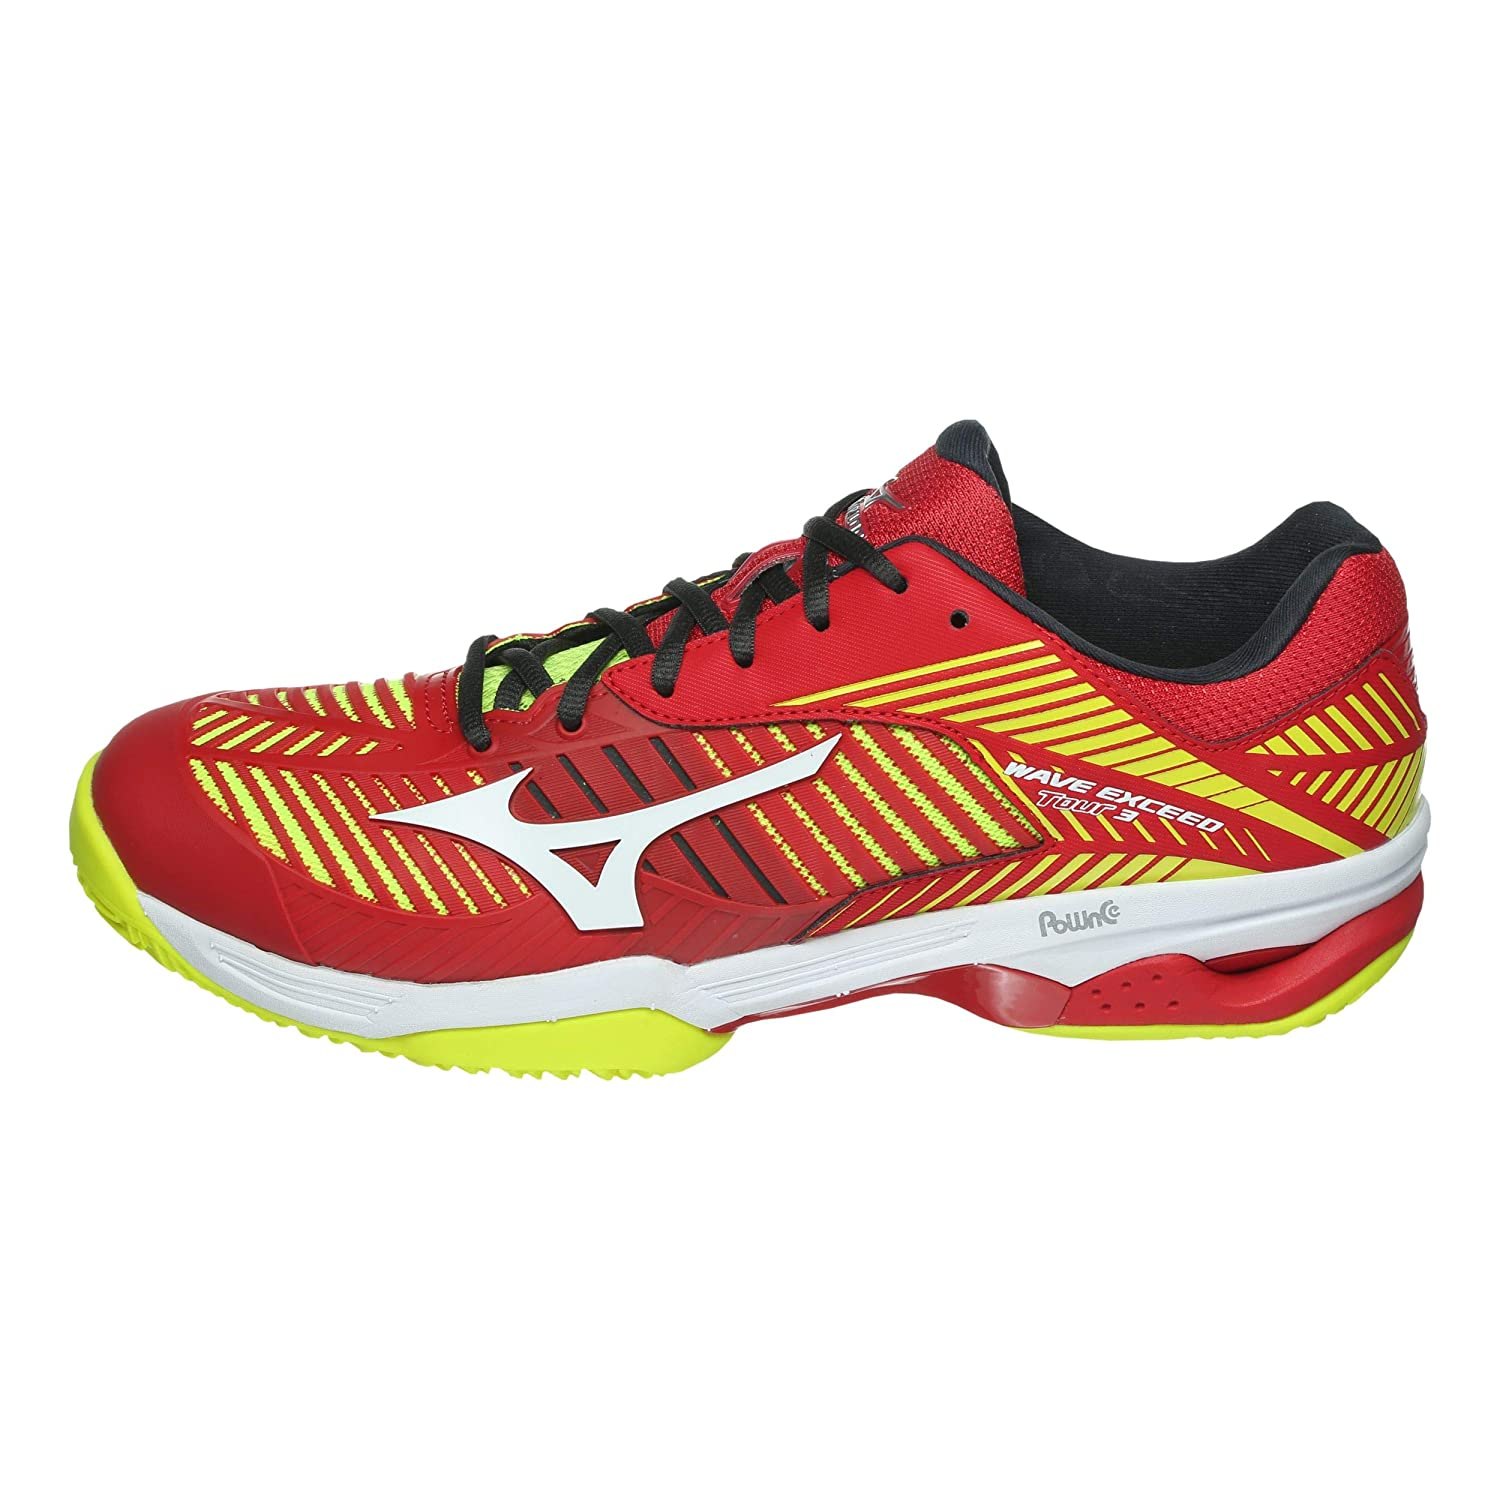 Mizuno Wave Exceed Exceed Exceed Tour CC rot gelb 61 gc187462 da2b0a